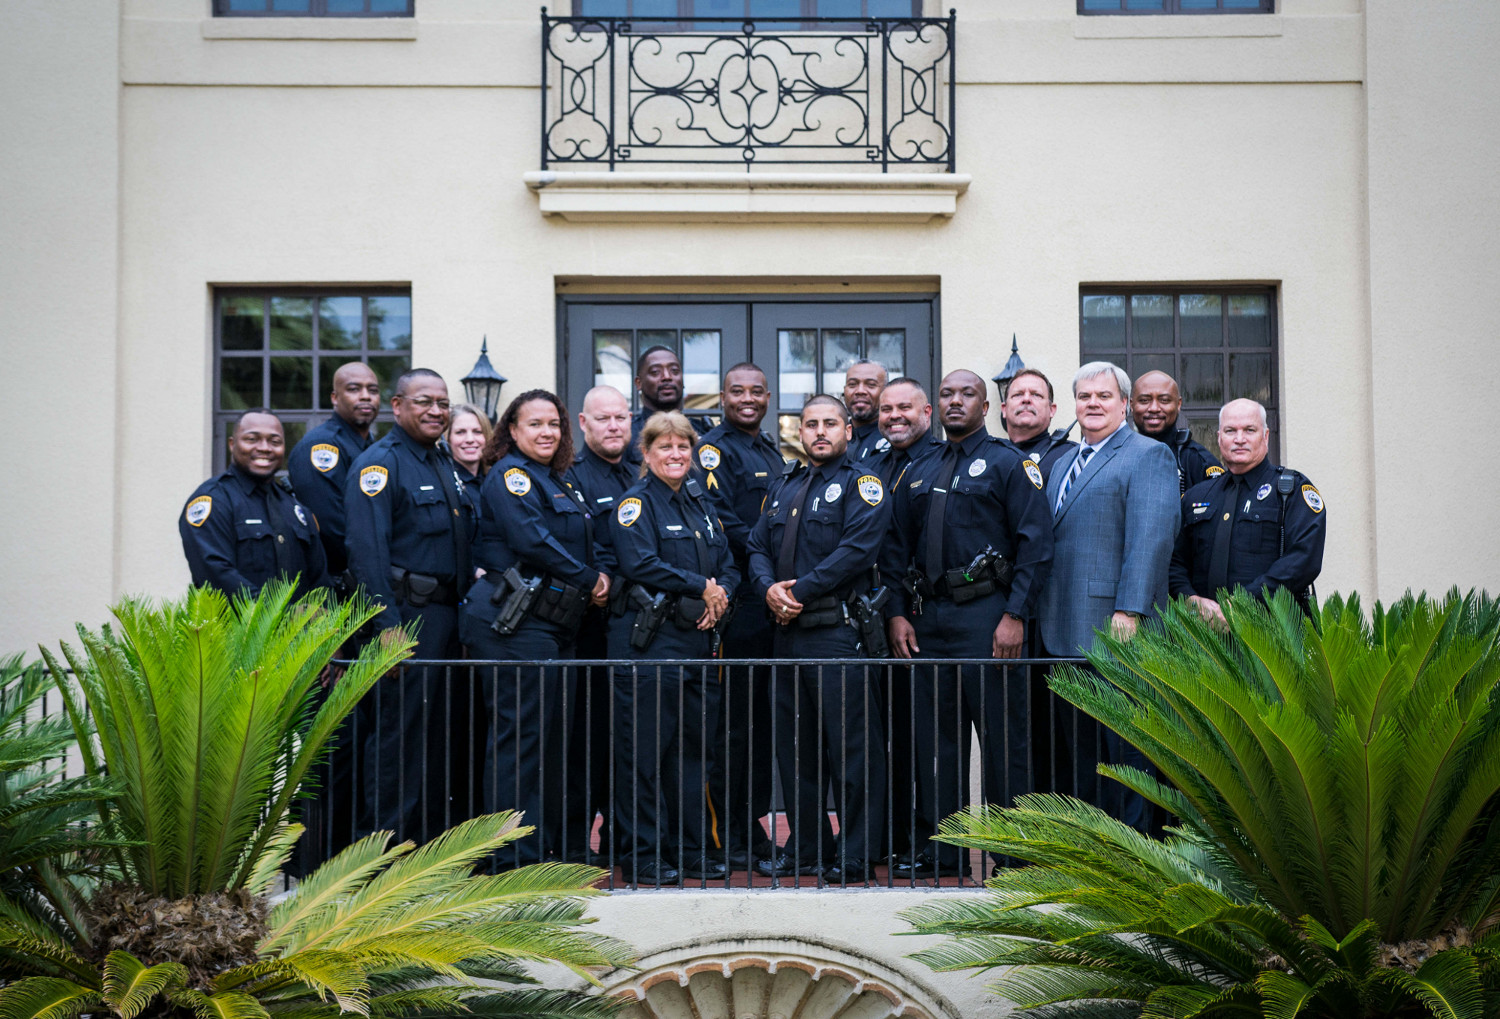 The entire GPD School Resource Officer Team posing for a group picture